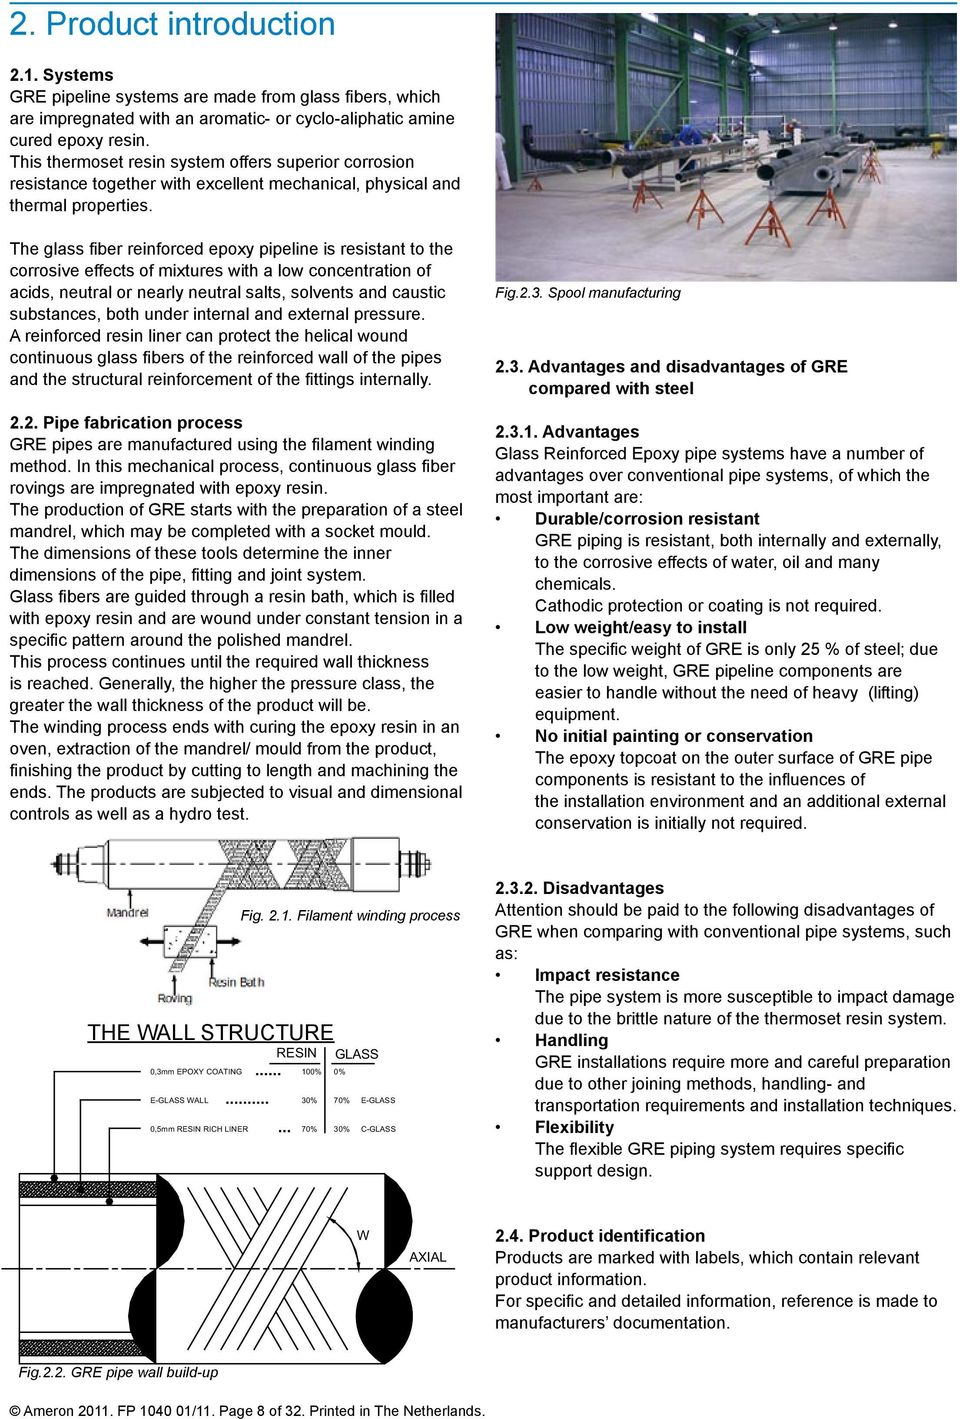 Installation Guide for GRE Pipe systems - PDF